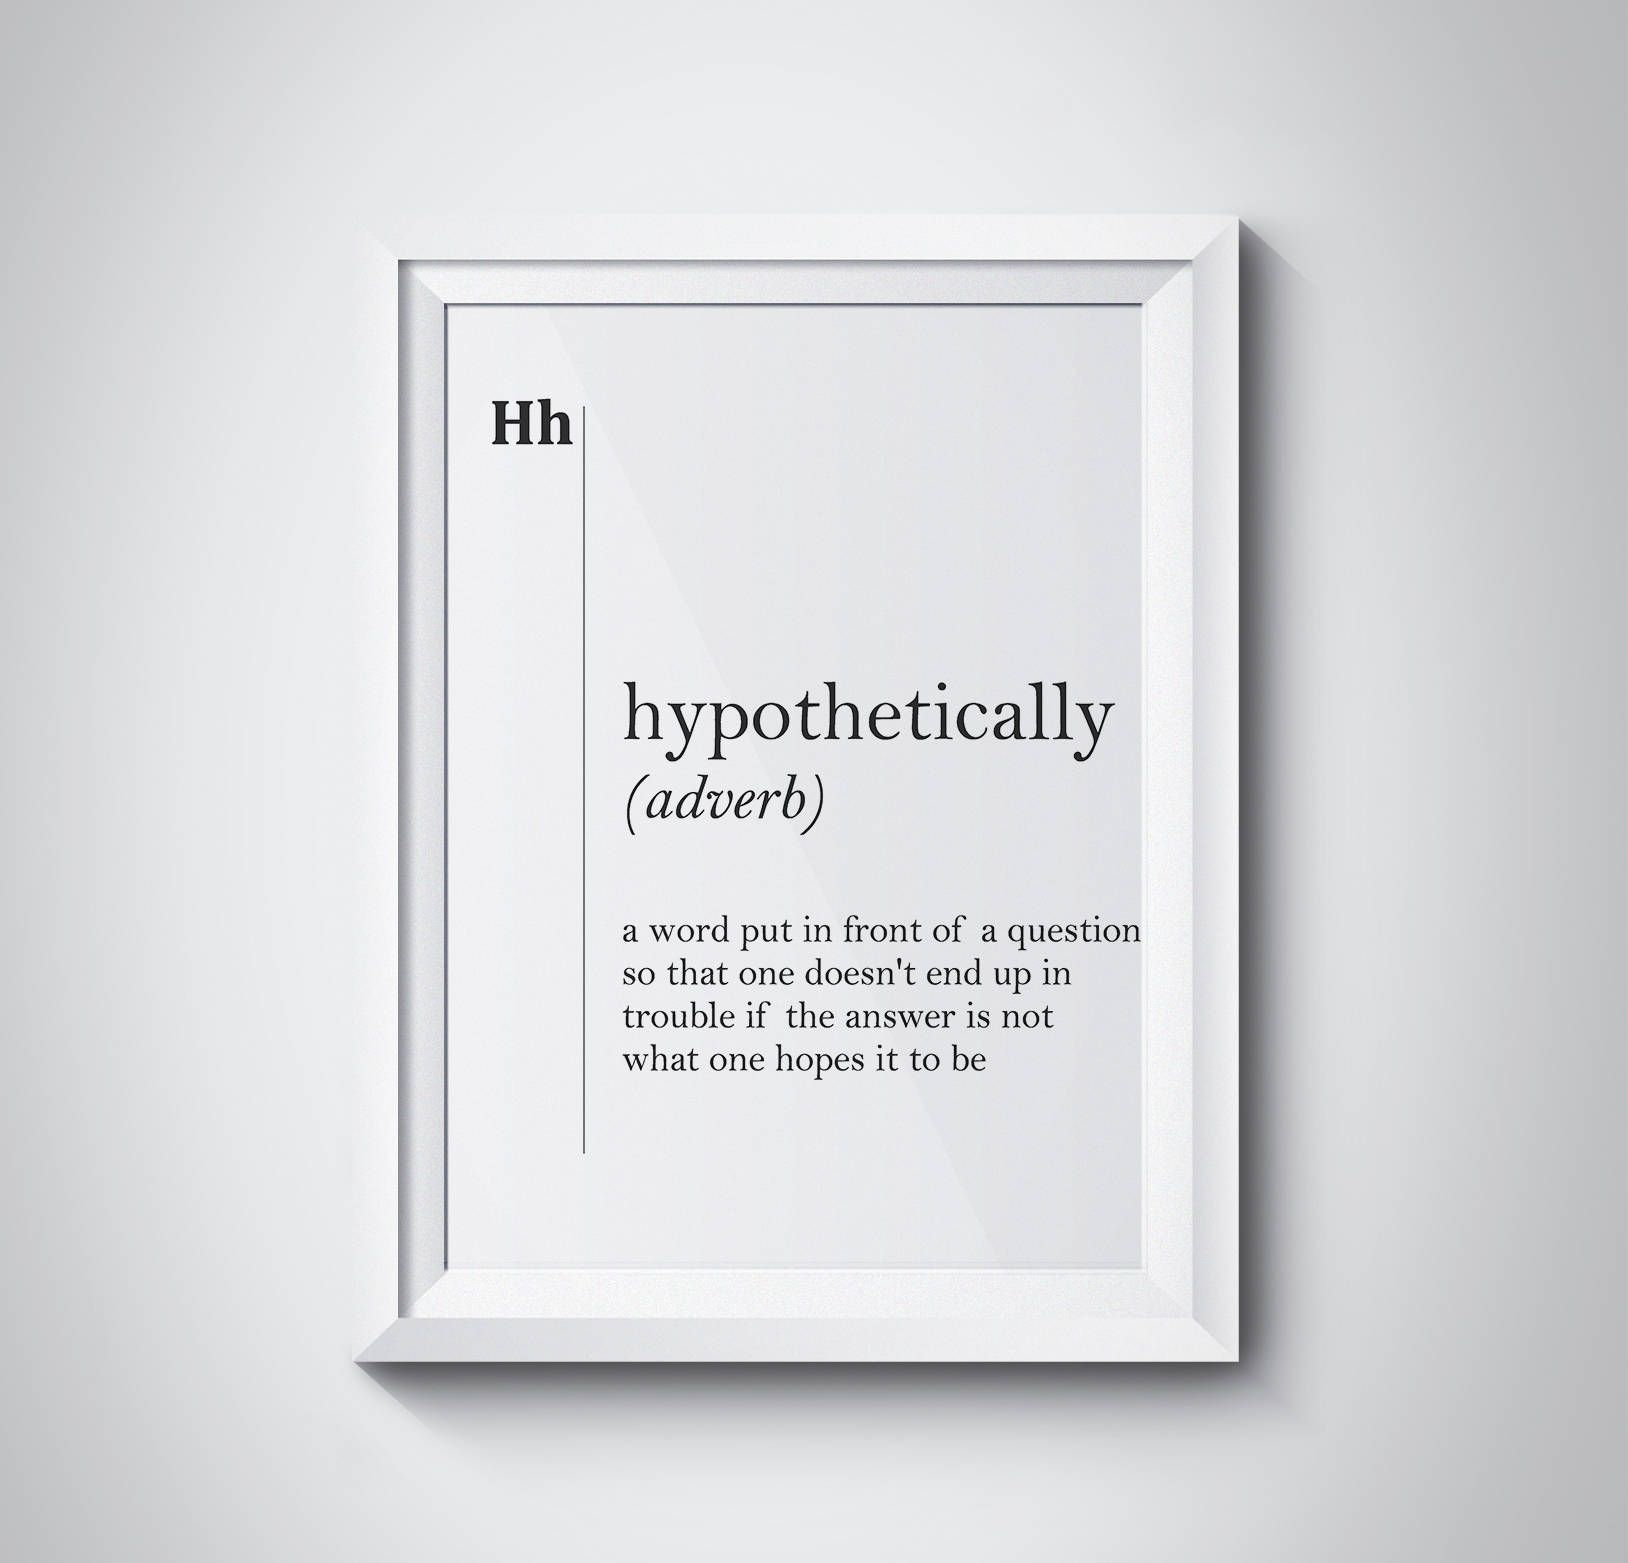 Hypothetically Definition Funny Print Lawyer Gift Modern Art Funny Poster Minimalism Scandinavian Art Office Decor Lawyer Office Decor Print by HQstudio on Etsy